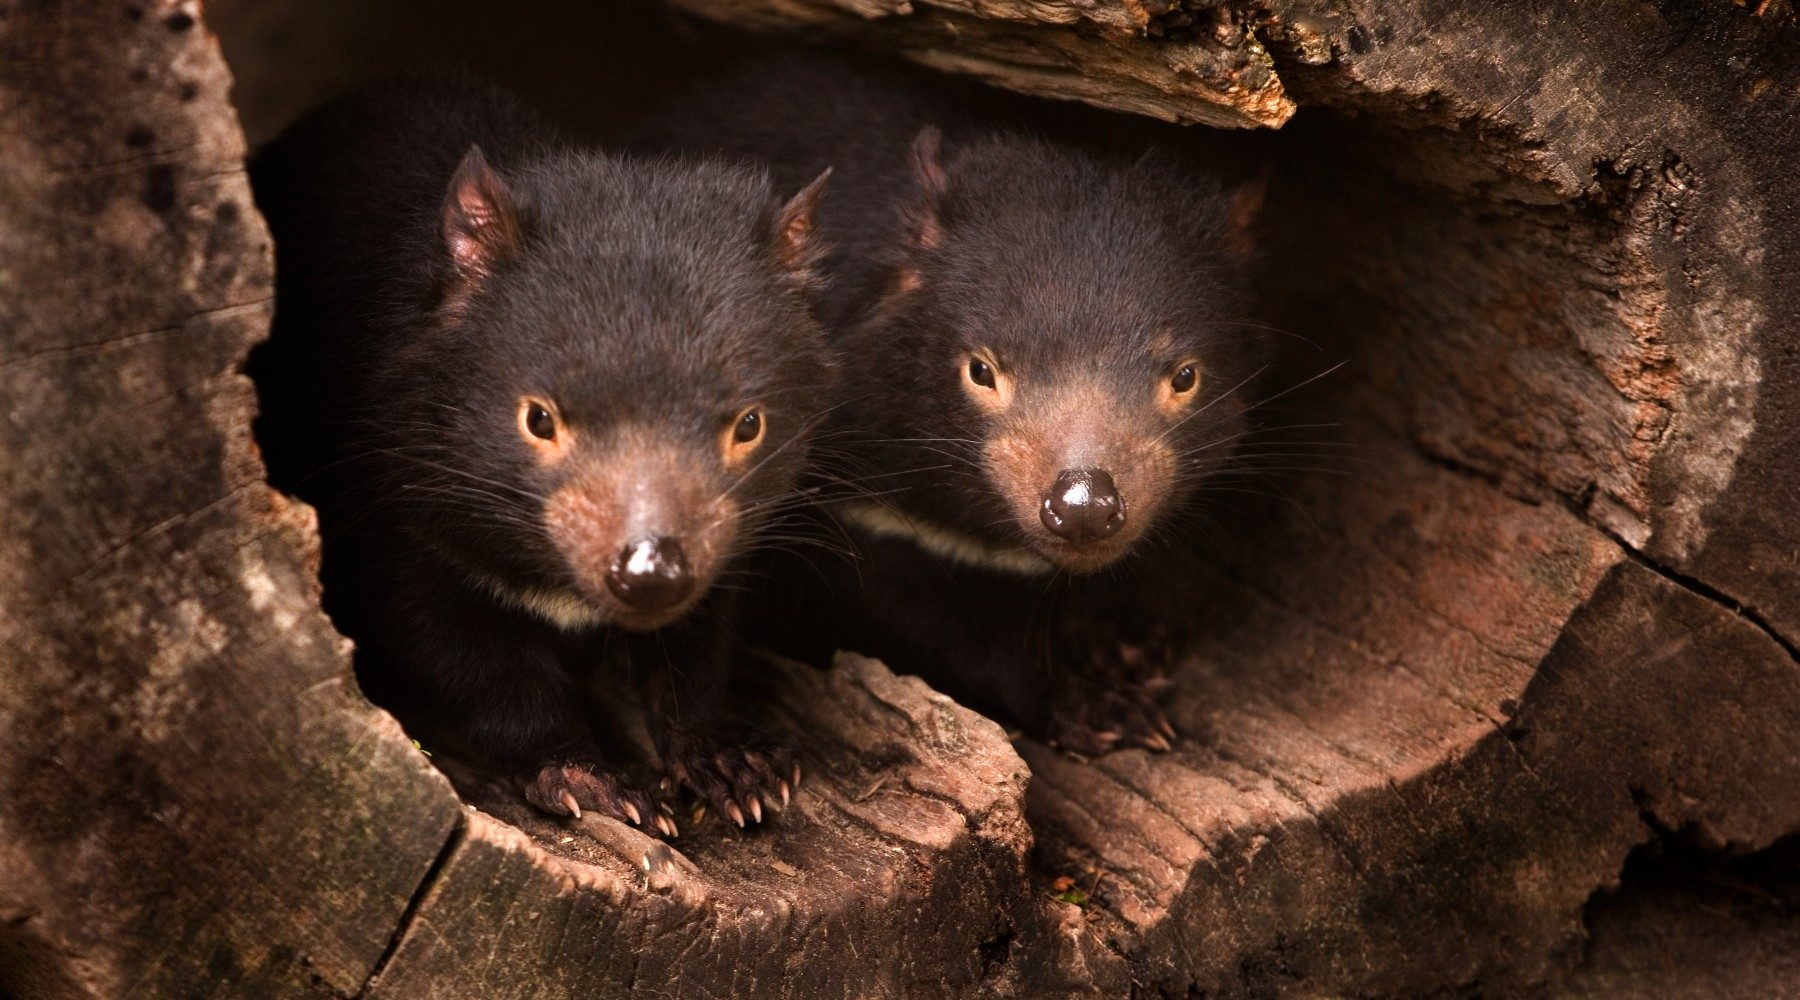 Two Tasmanian devils sitting together in the hollow of a fallen tree.